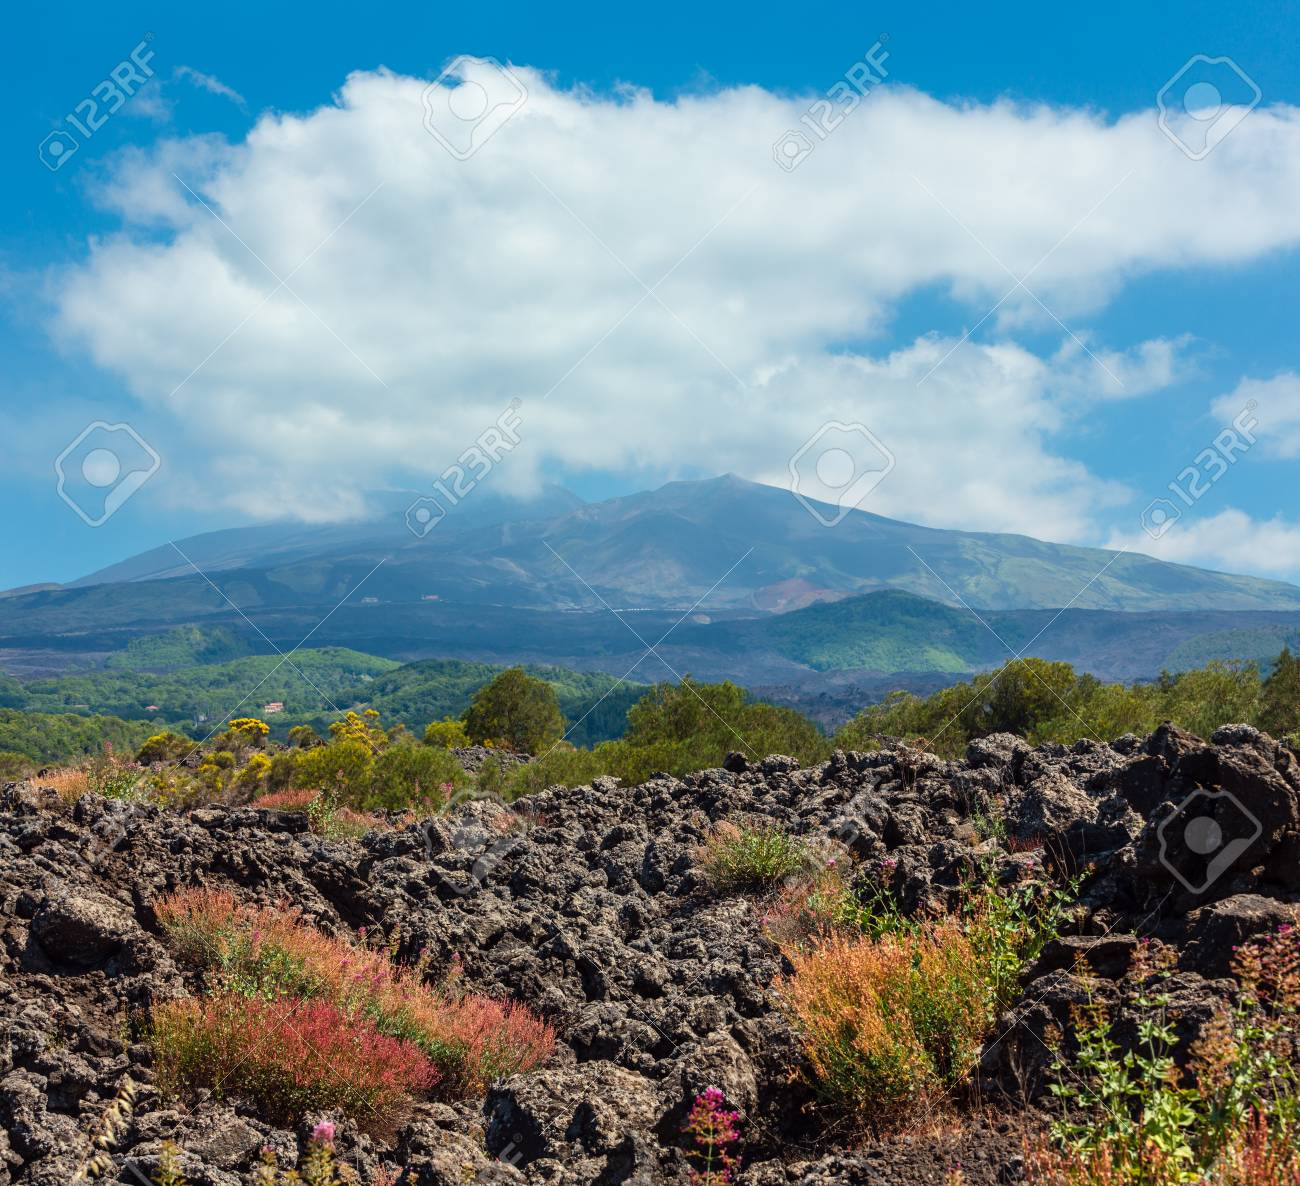 104571872-view-from-foot-of-summer-etna-